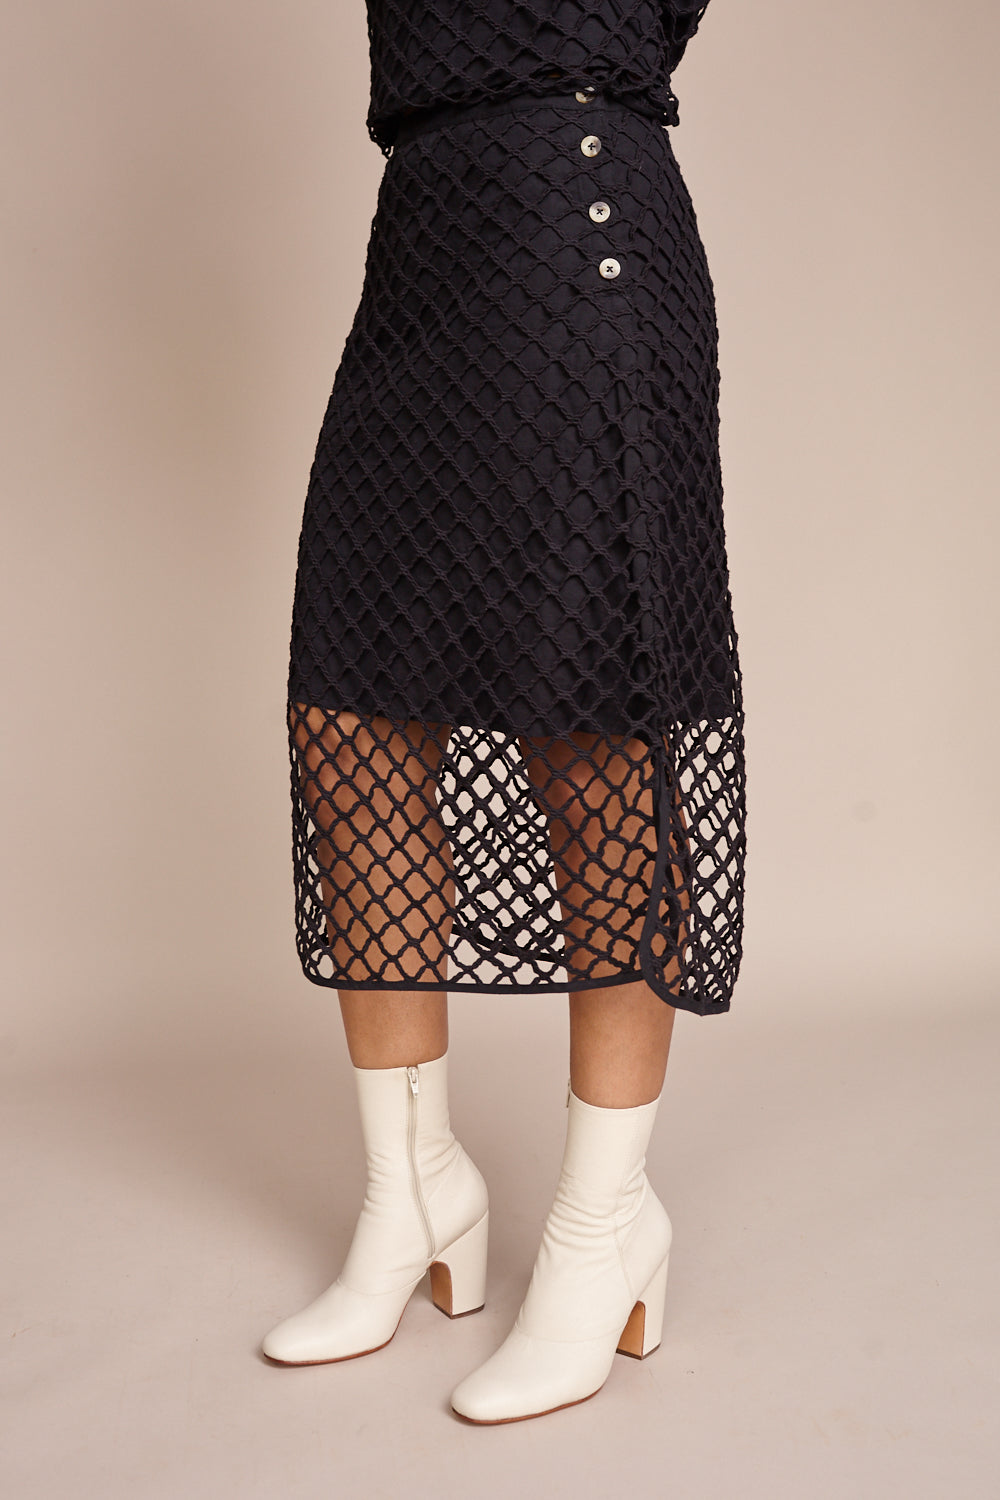 Carla Macrame Skirt in Black